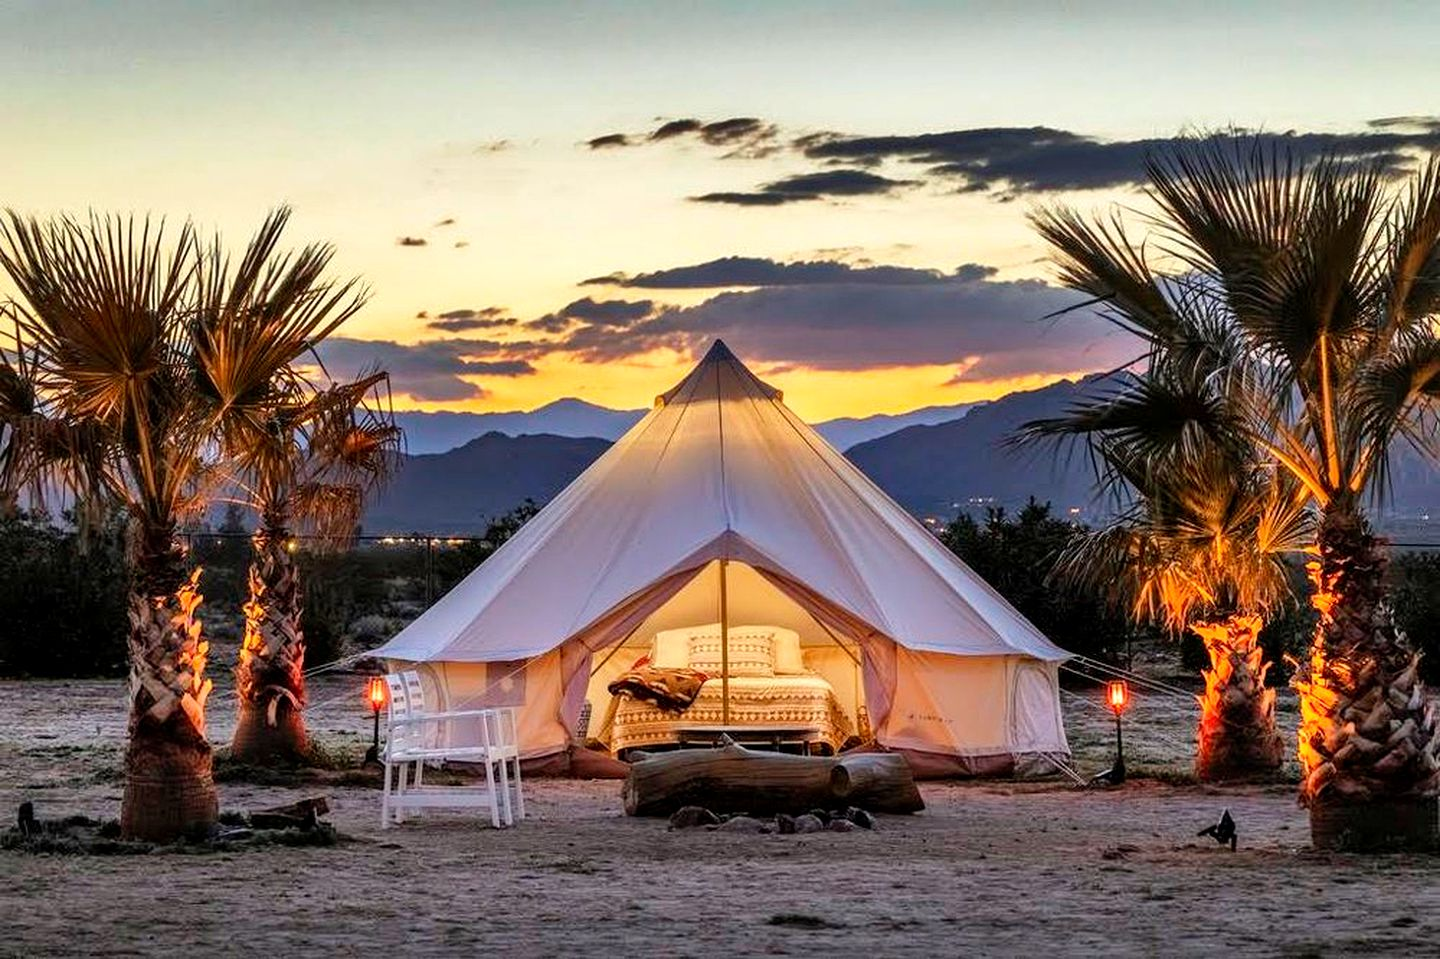 This Joshua Tree accommodation is ideal for glamping in California. Luxury yurt camping, California. Perfect for glamping in California